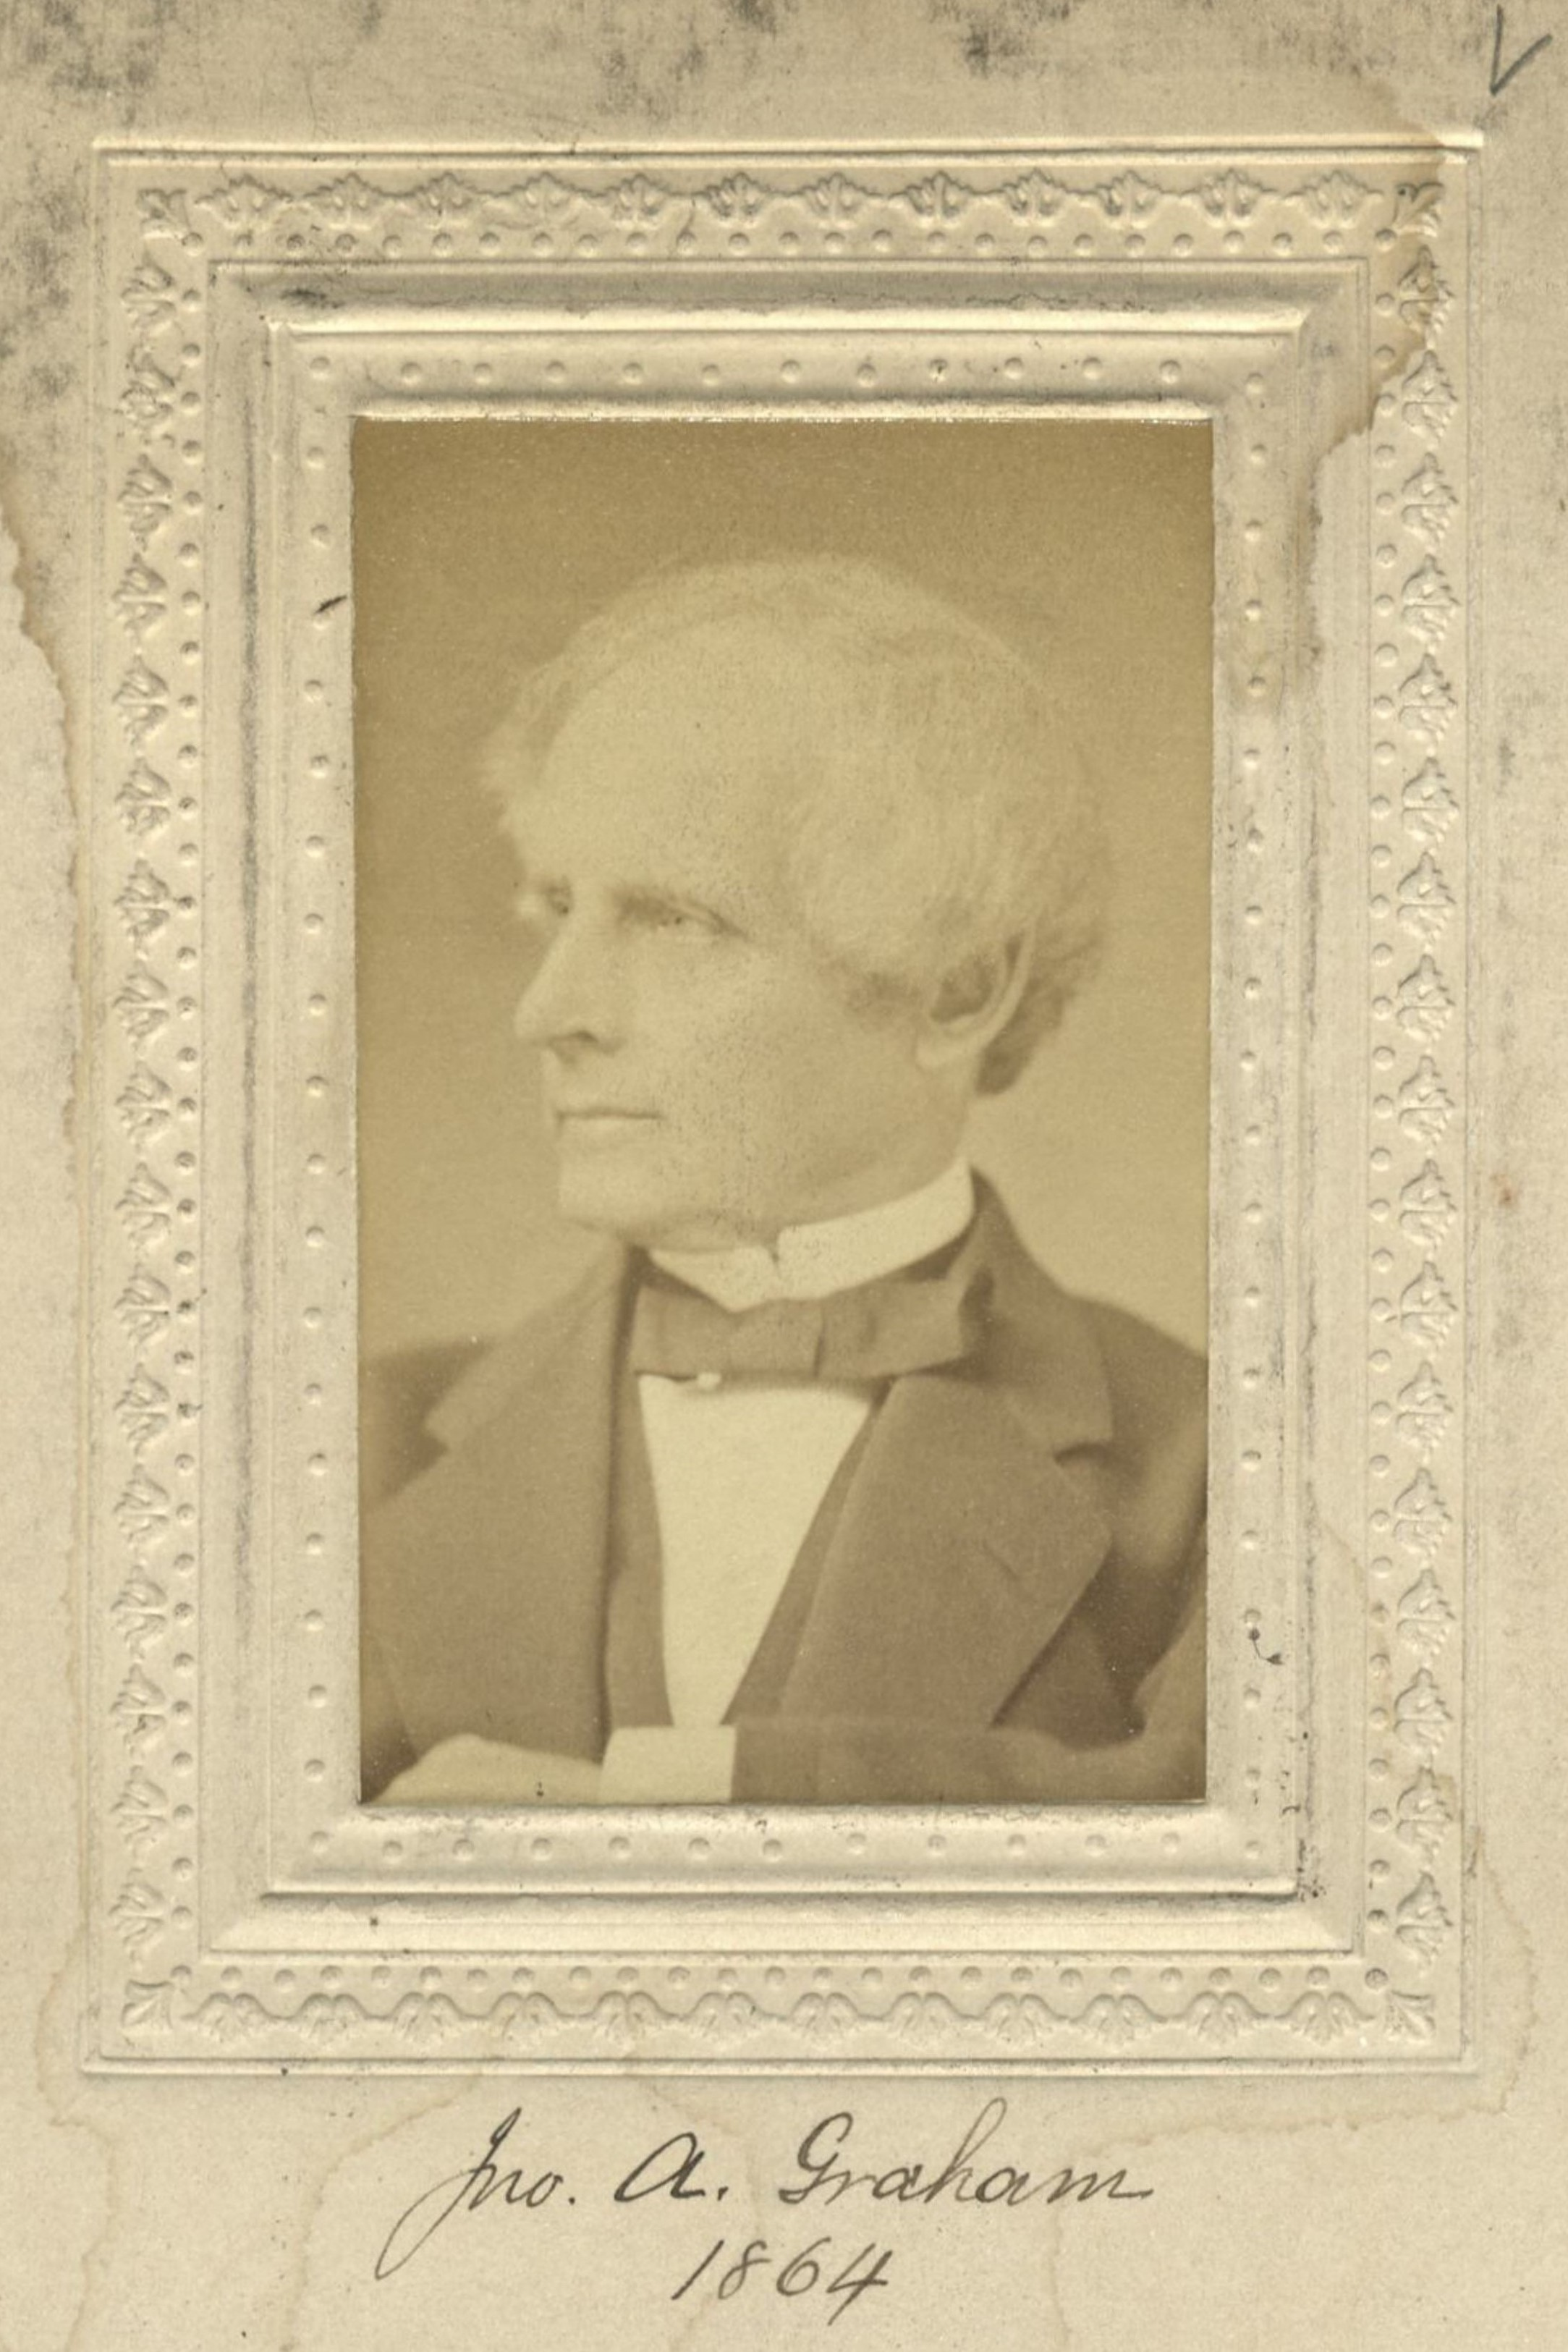 Member portrait of John A. Graham